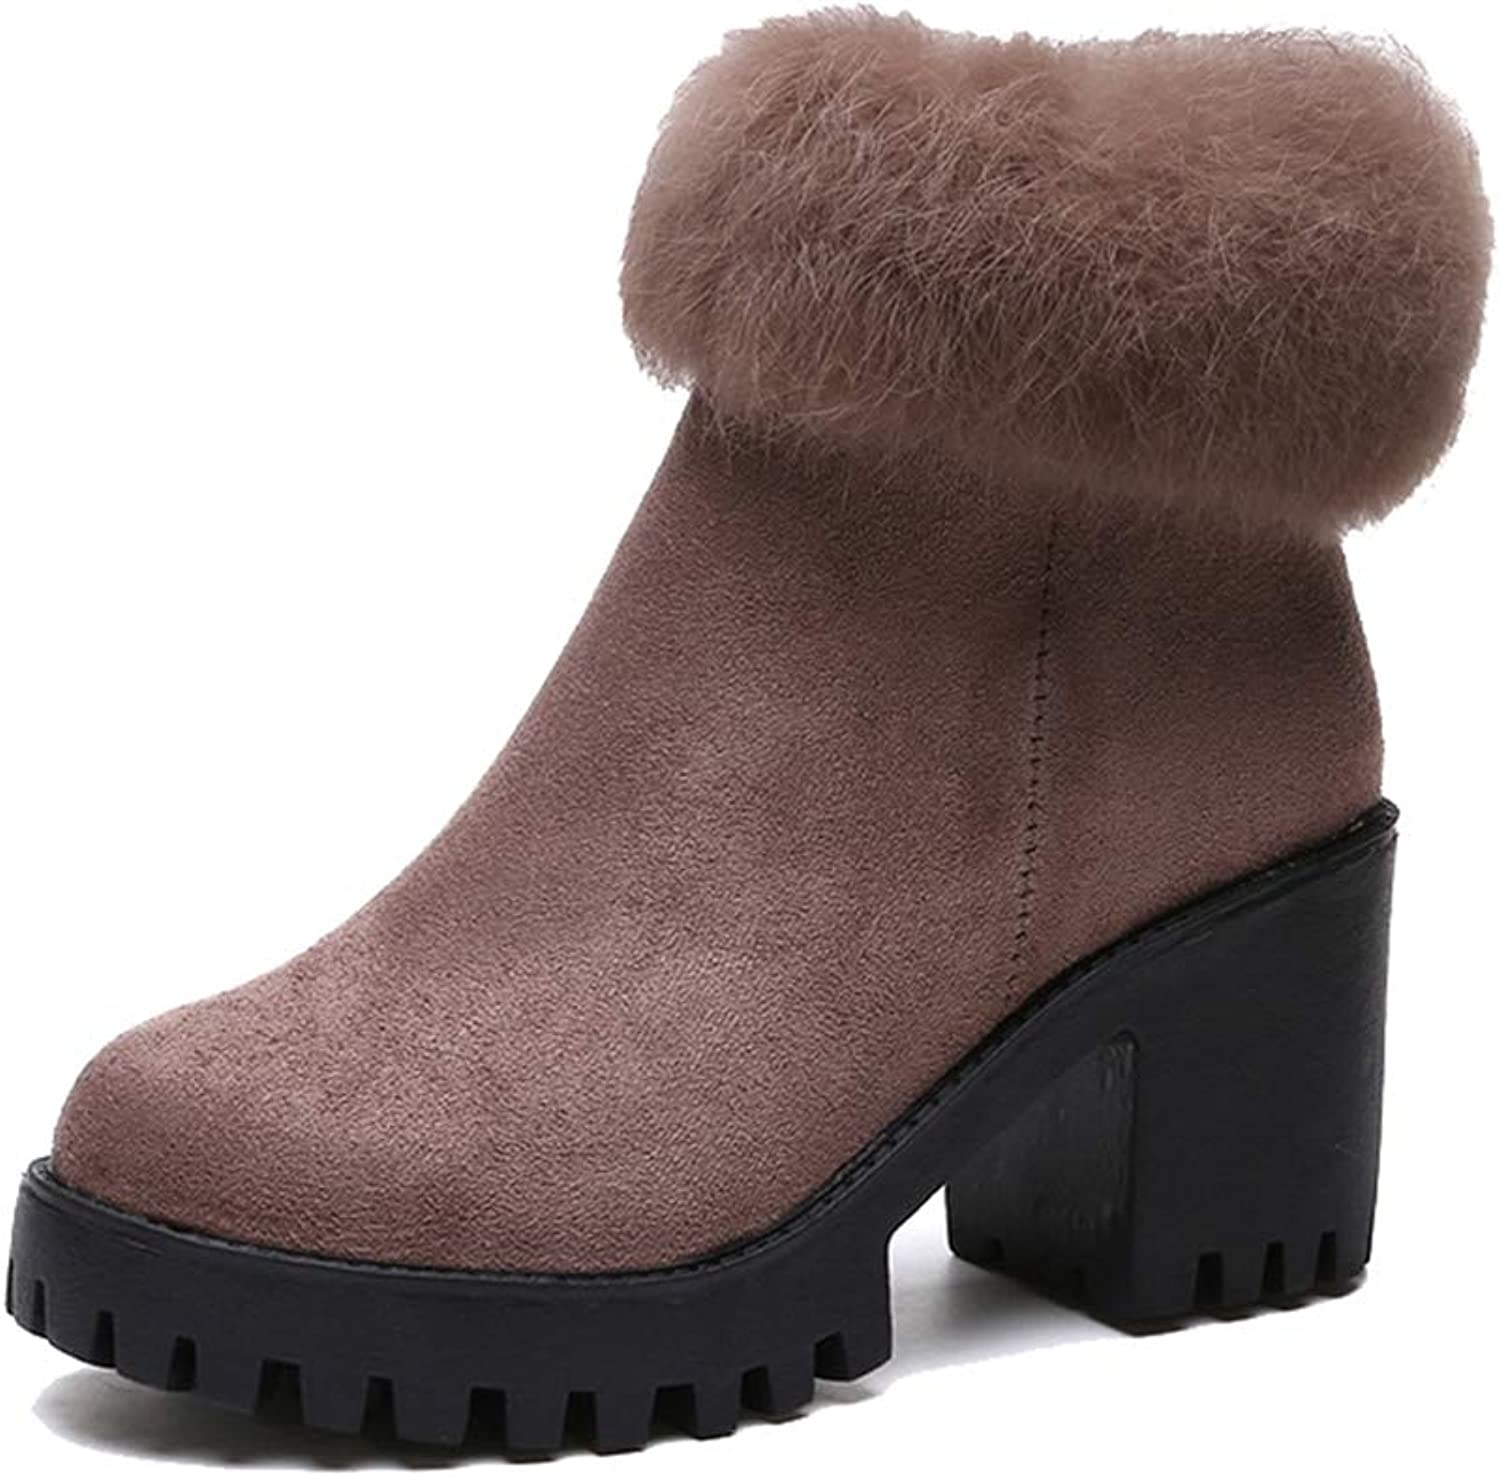 Kyle Walsh Pa Women Classic Ankle Boots Warm Fur Square High Heel Platform Ladies Winter Fashion Booties